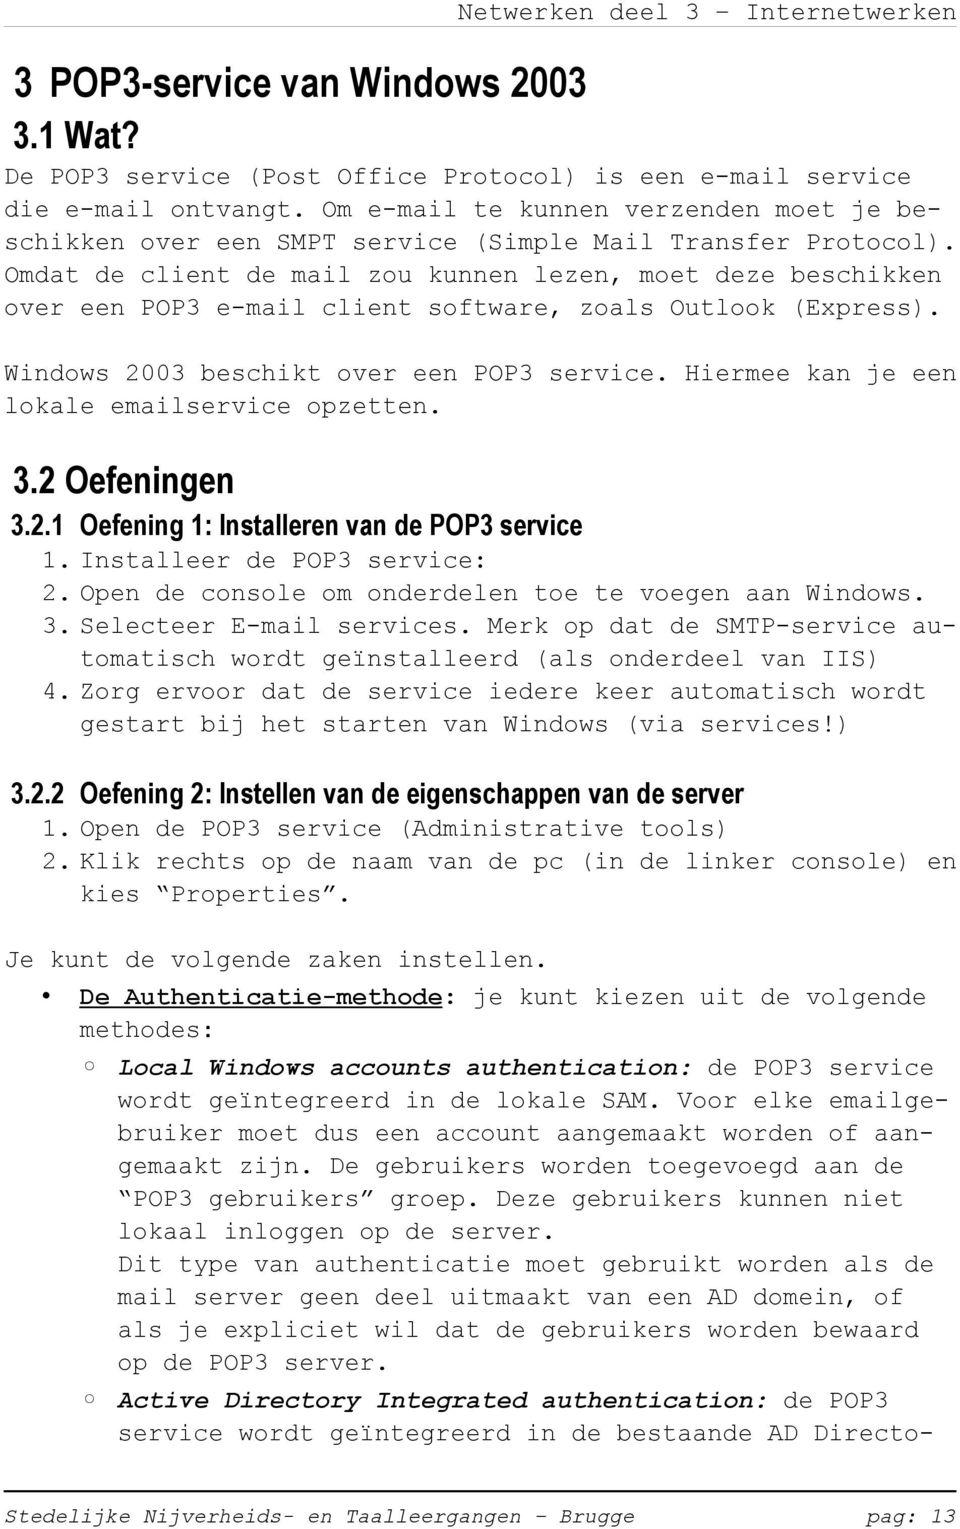 Omdat de client de mail zou kunnen lezen, moet deze beschikken over een POP3 e-mail client software, zoals Outlook (Express). Windows 2003 beschikt over een POP3 service.